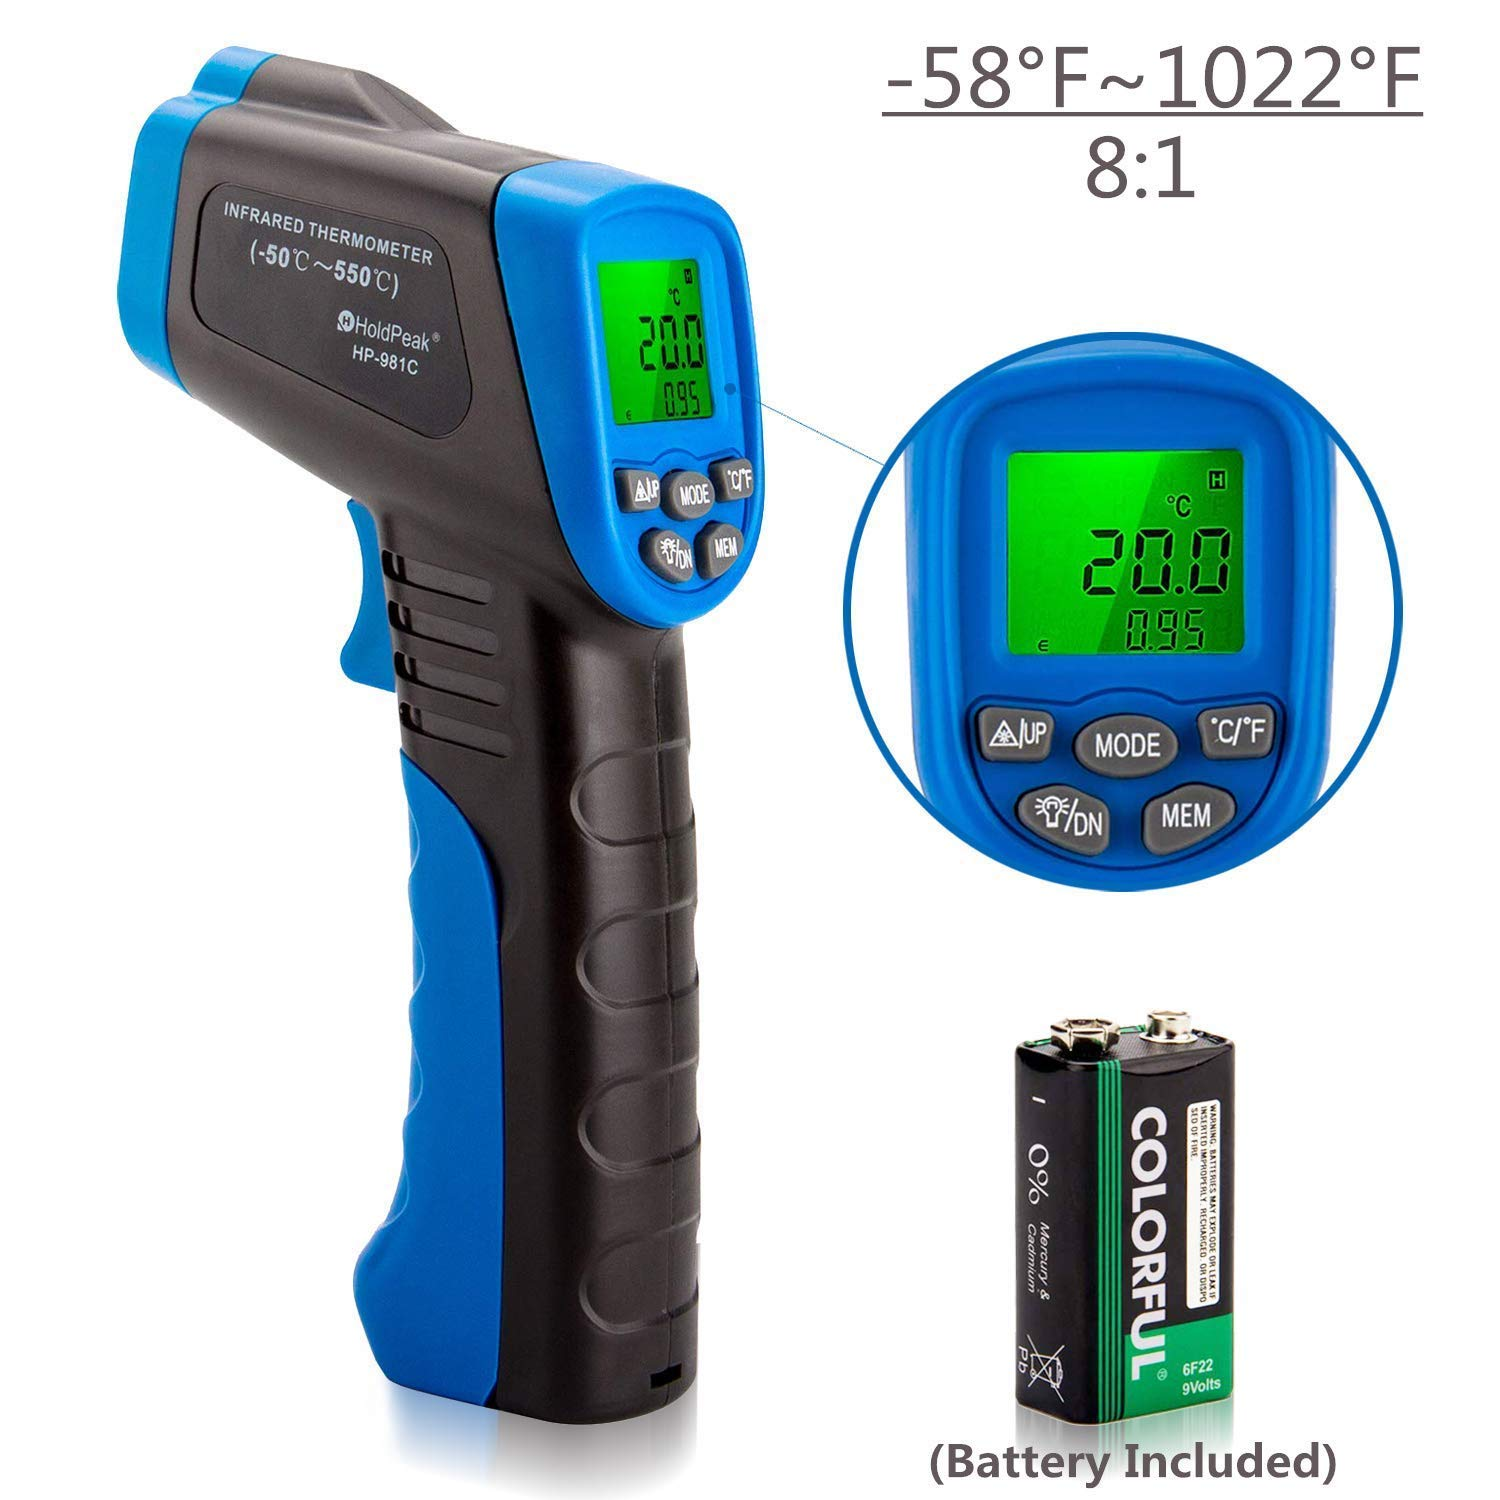 HOLDPEAK 981C Non-Contact Digital Laser Infrared Thermometer Temperature Gun Instant-read -58 to 1022℉ (-50 to 550℃) with 9V Battery and Emissivity 0.1-1.0(Adjustable) by H HOLDPEAK